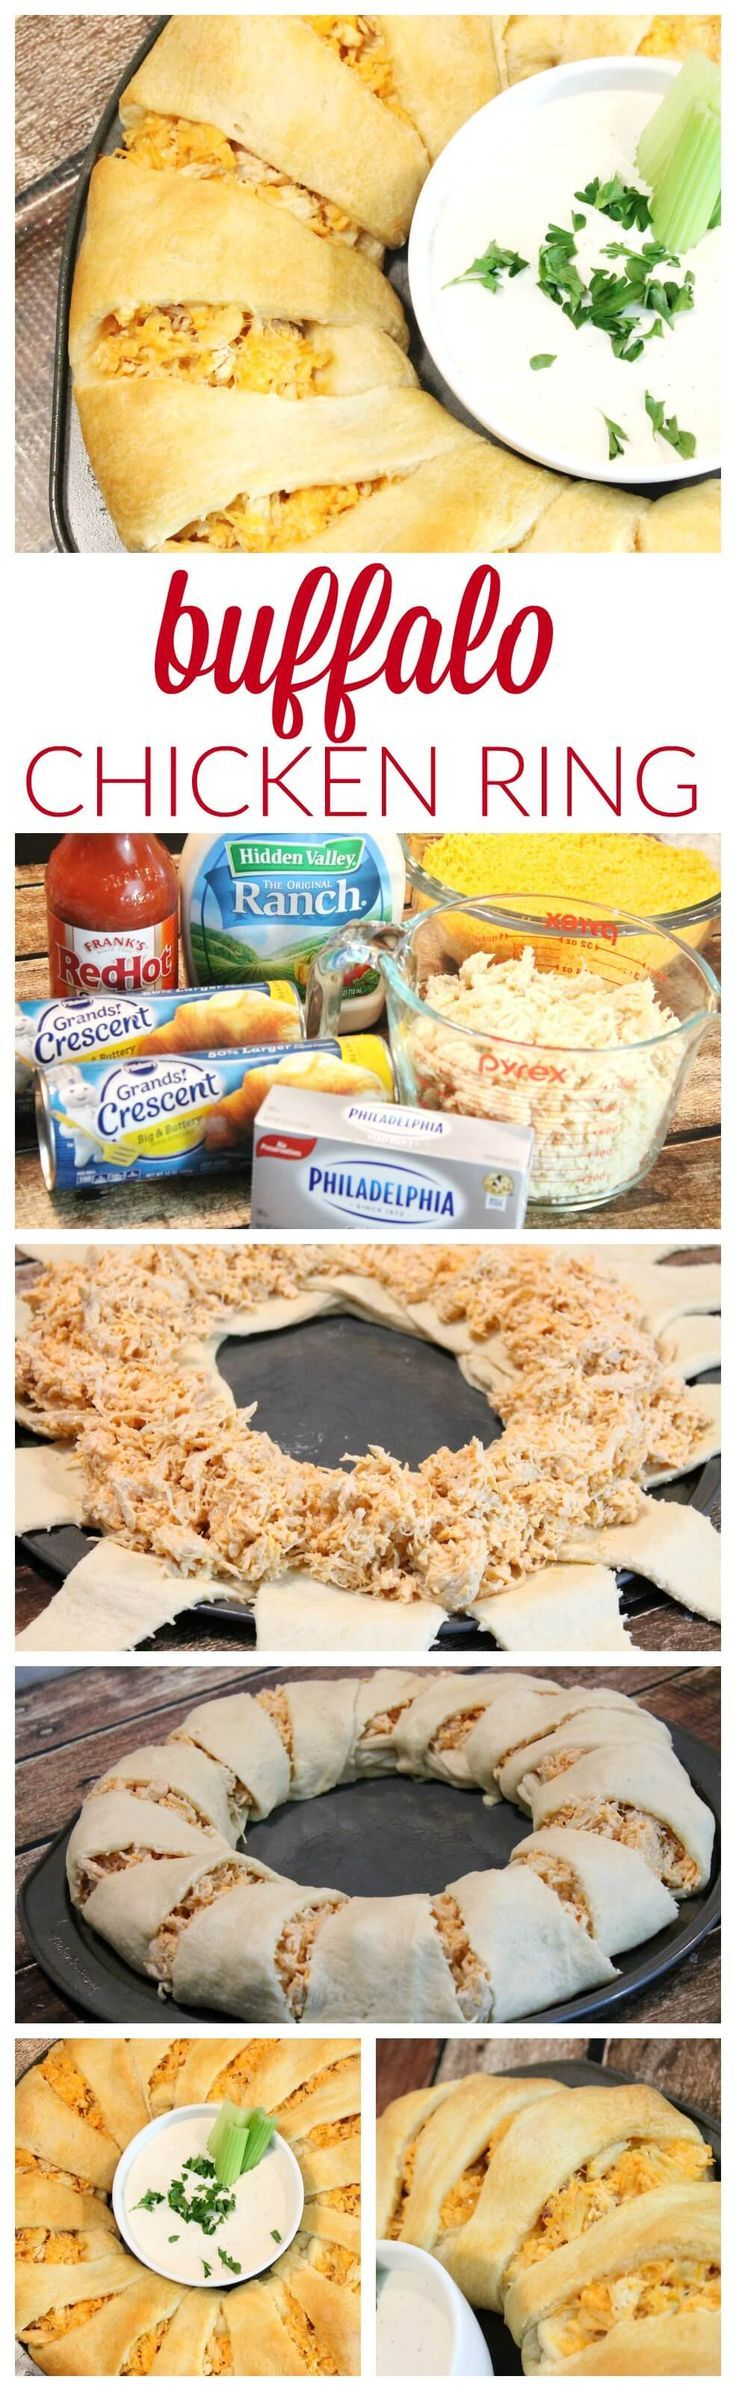 Buffalo Chicken Crescent Roll Ring Recipe - http://doctorforlove.info/buffalo-chicken-crescent-roll-ring-recipe